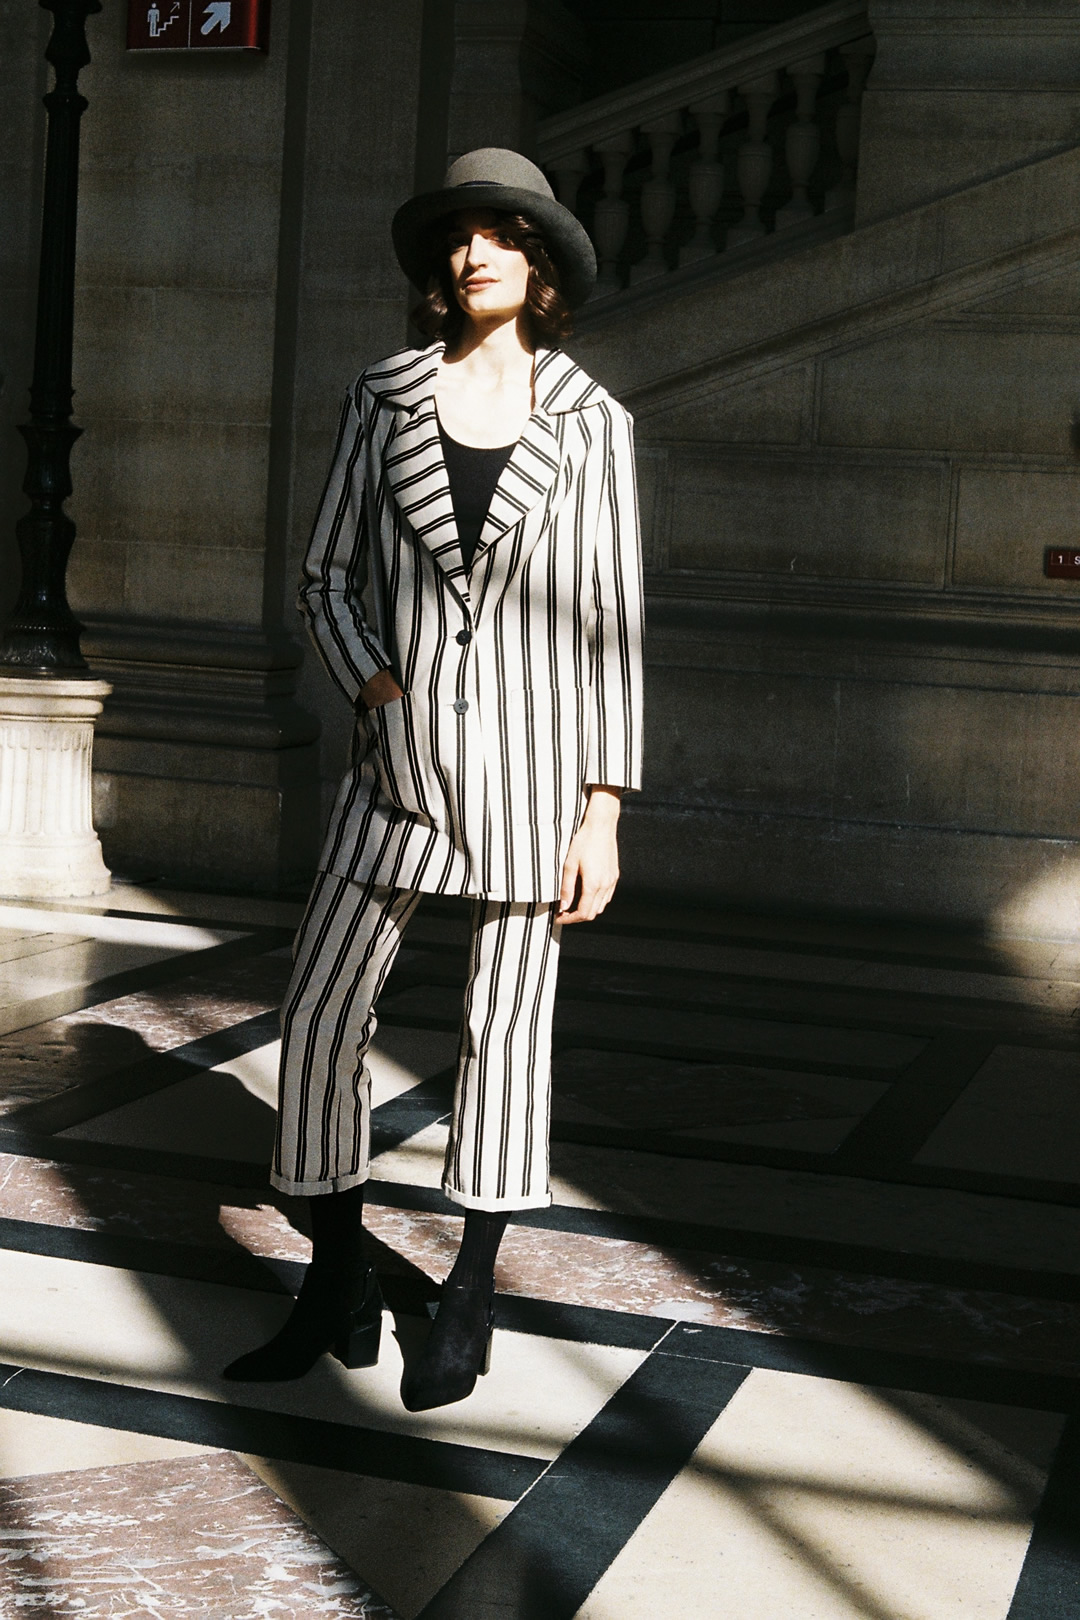 2015aw Show at Palais de Justice Paris